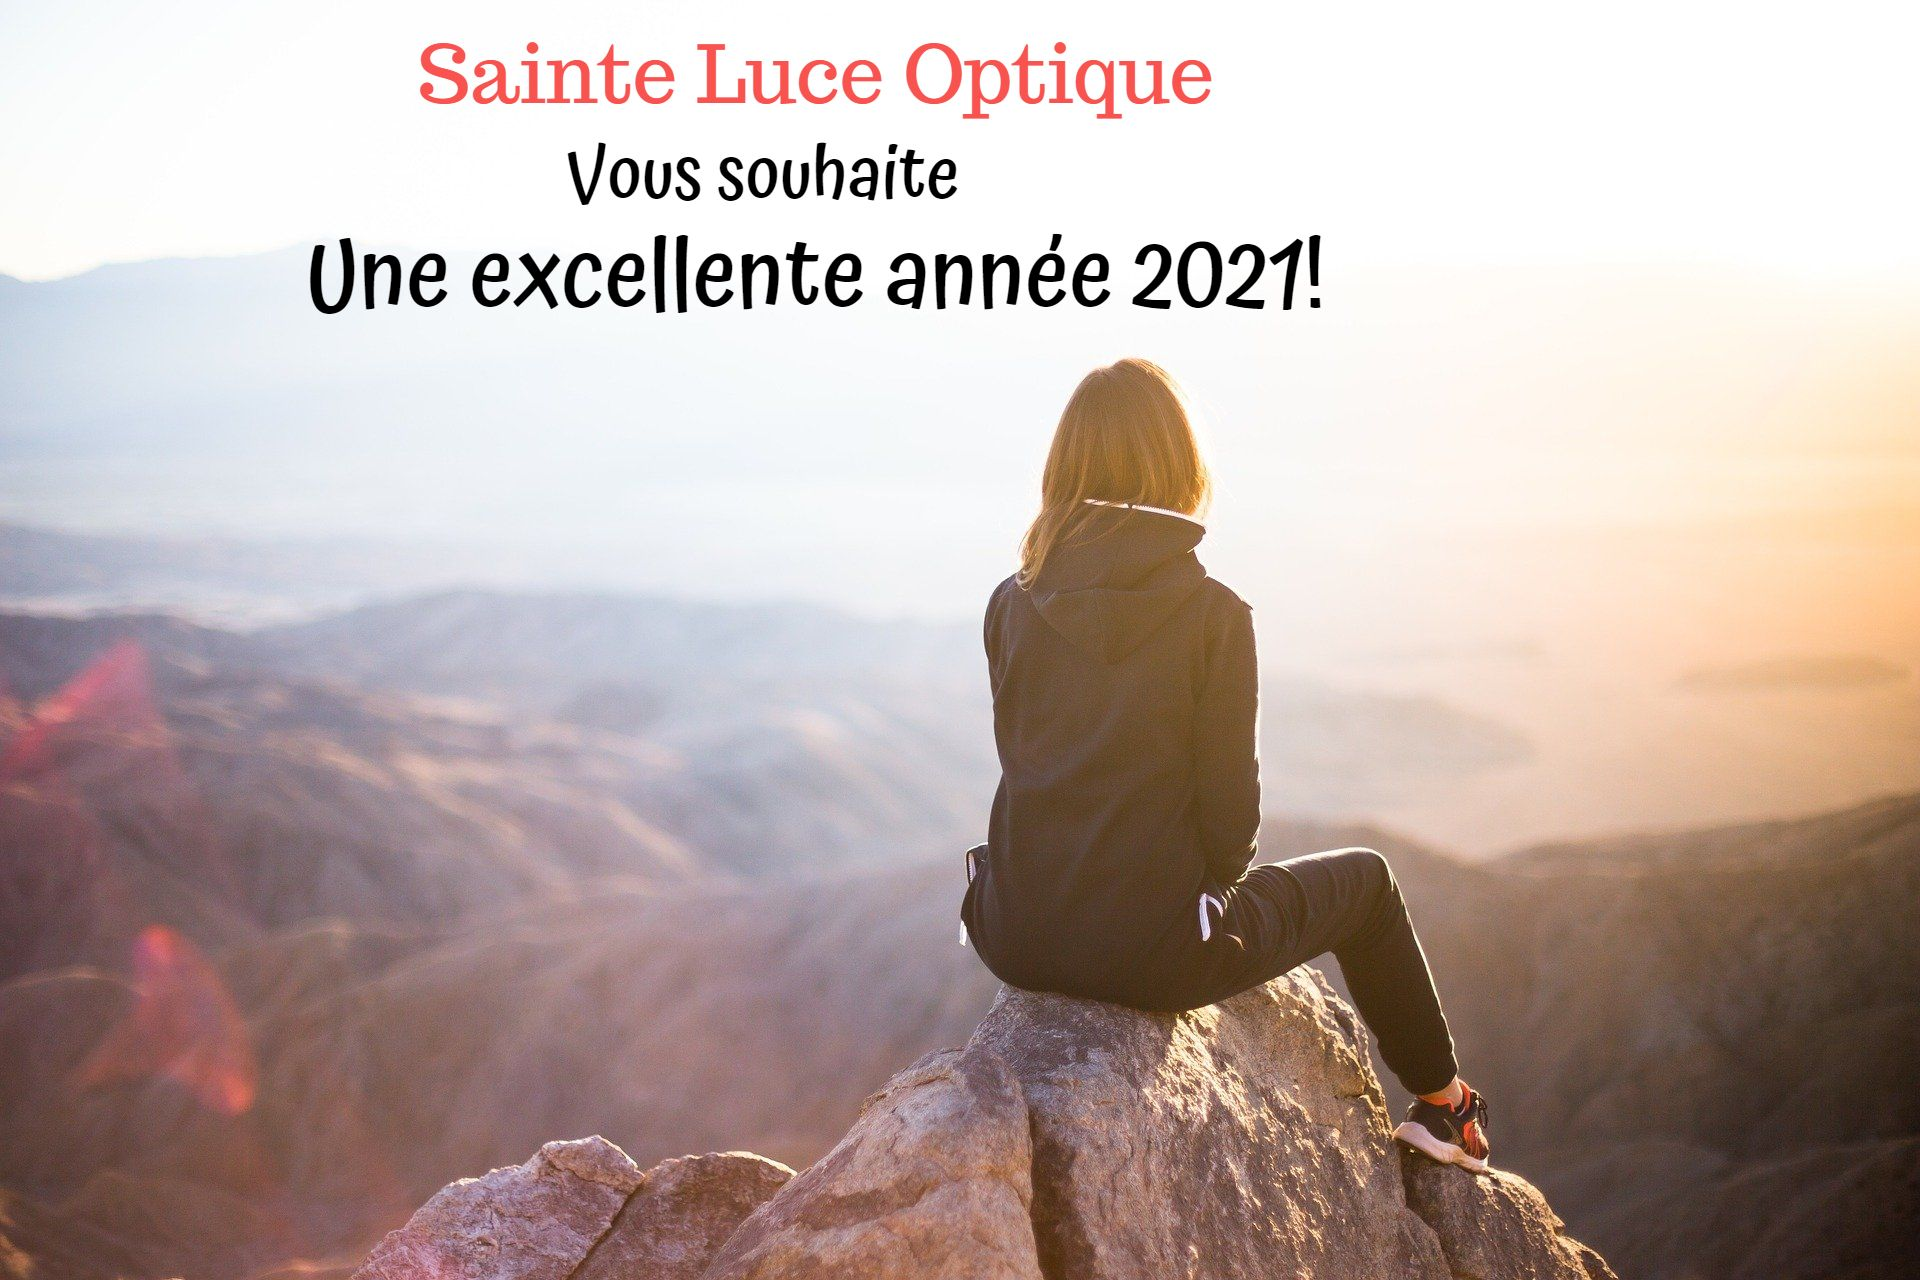 Voeux 2021!